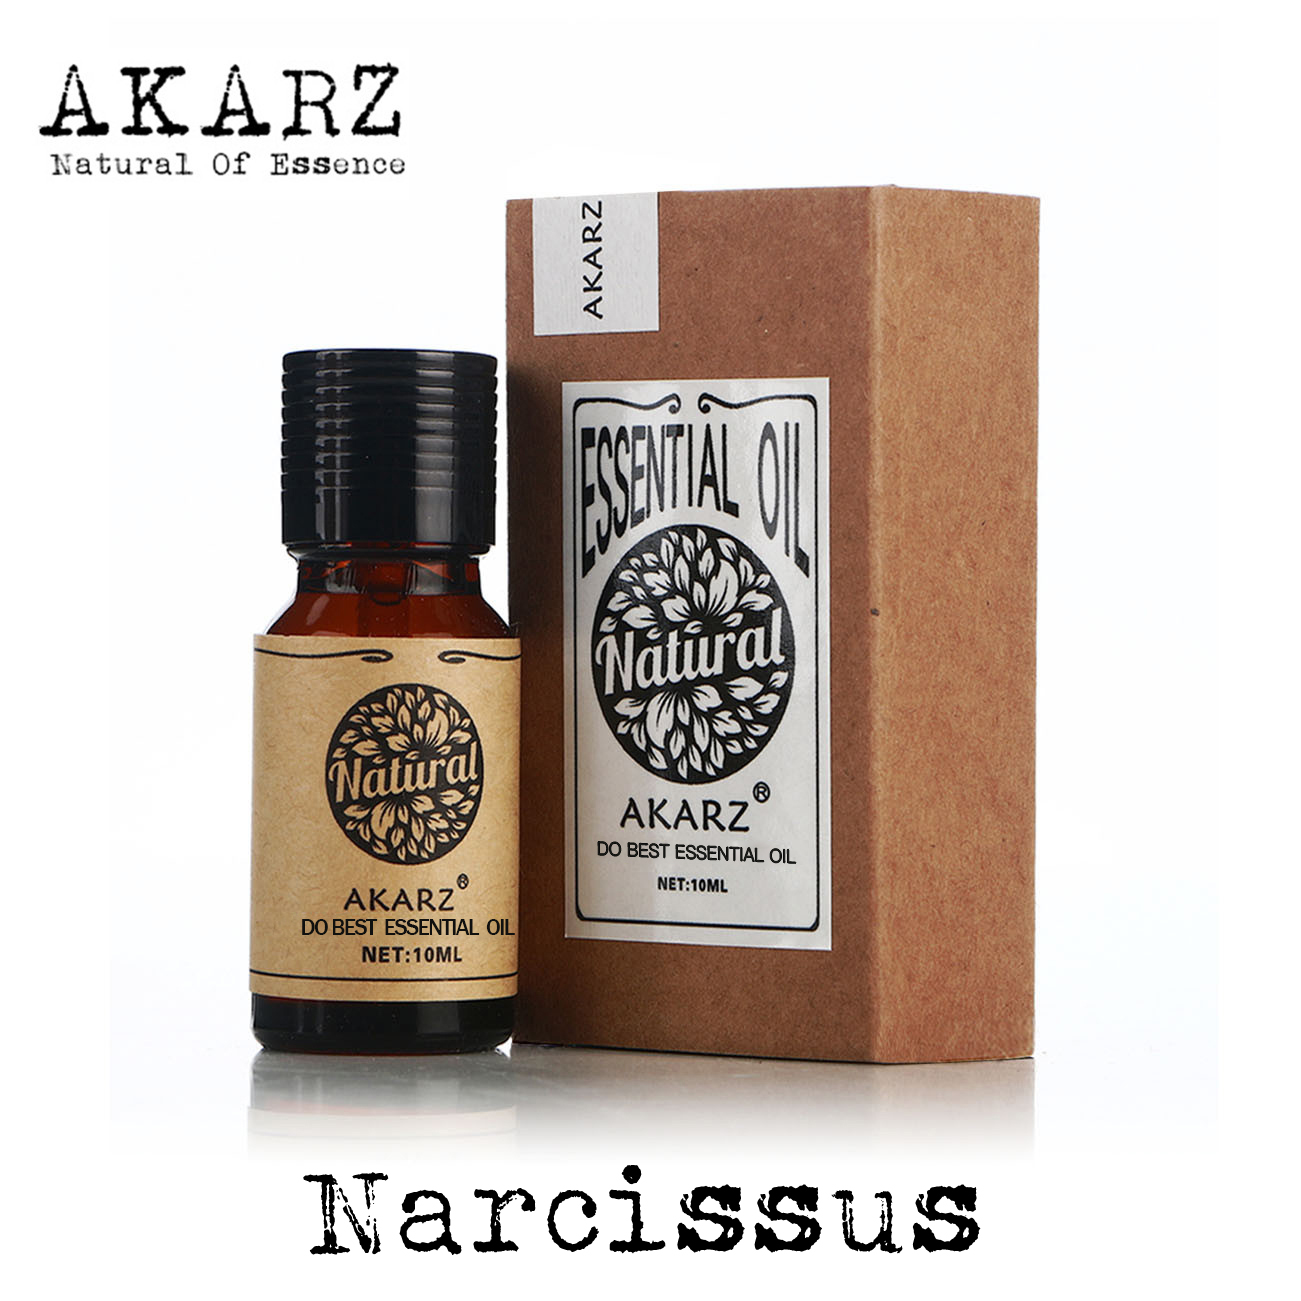 Diy Soap Essential Oils Narcissus Essential Oil Akarz Brand Natural Oiliness Cosmetics